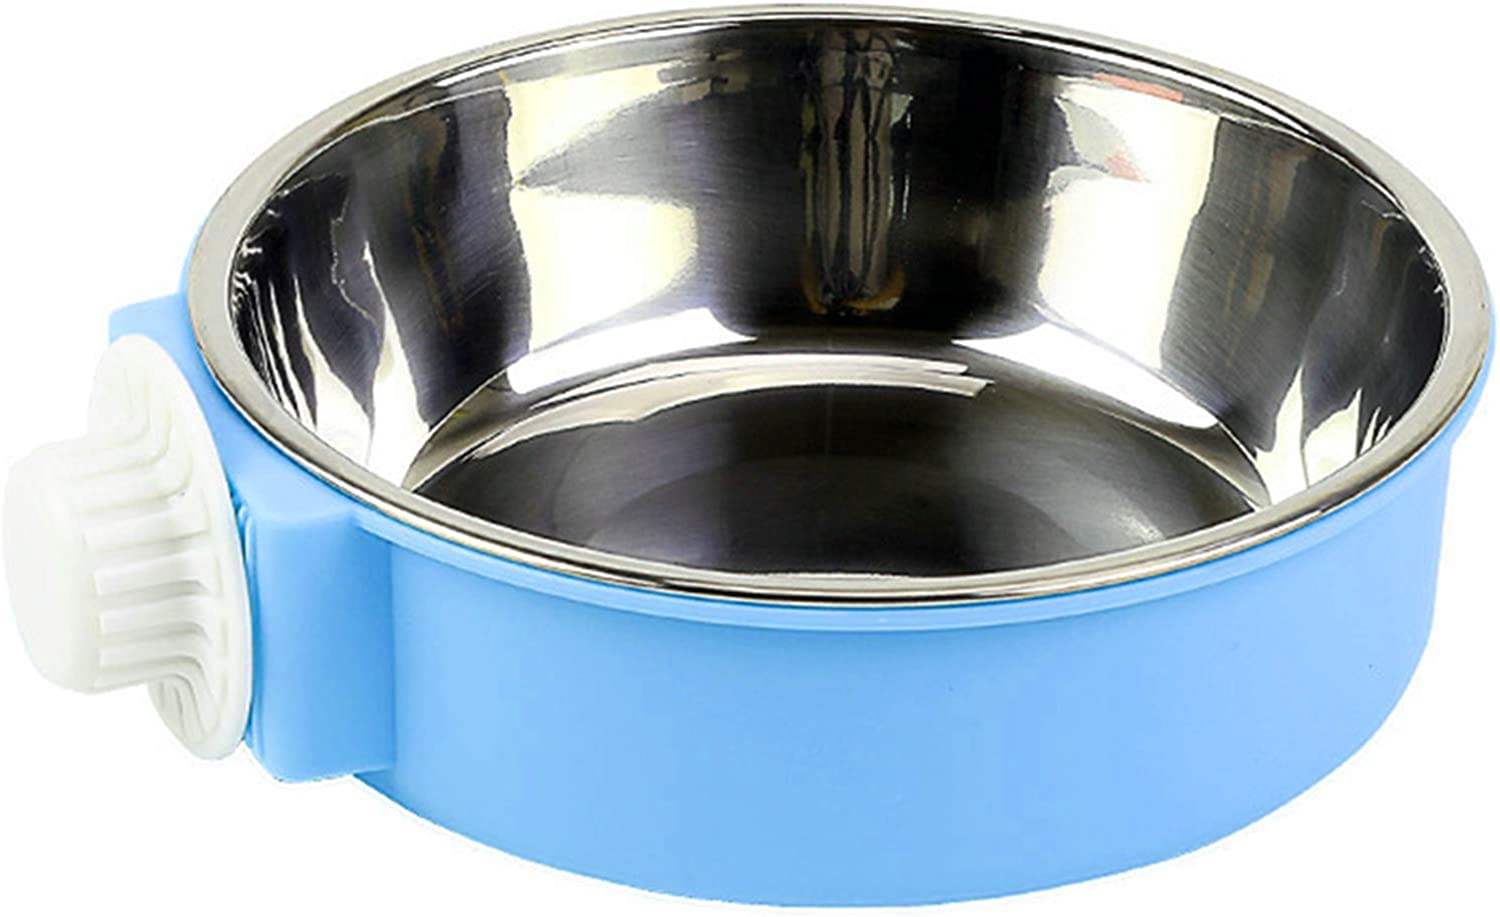 Lucky Interests Crate Dog Bowl, 2-in-1 Plastic Bowl & Stainless Steel Bowl Removable Hanging Food & Water Feeder Cage Bowl Coop Cup for Cat, Puppy, Birds, Parrot, Guinea Pigs (Blue)